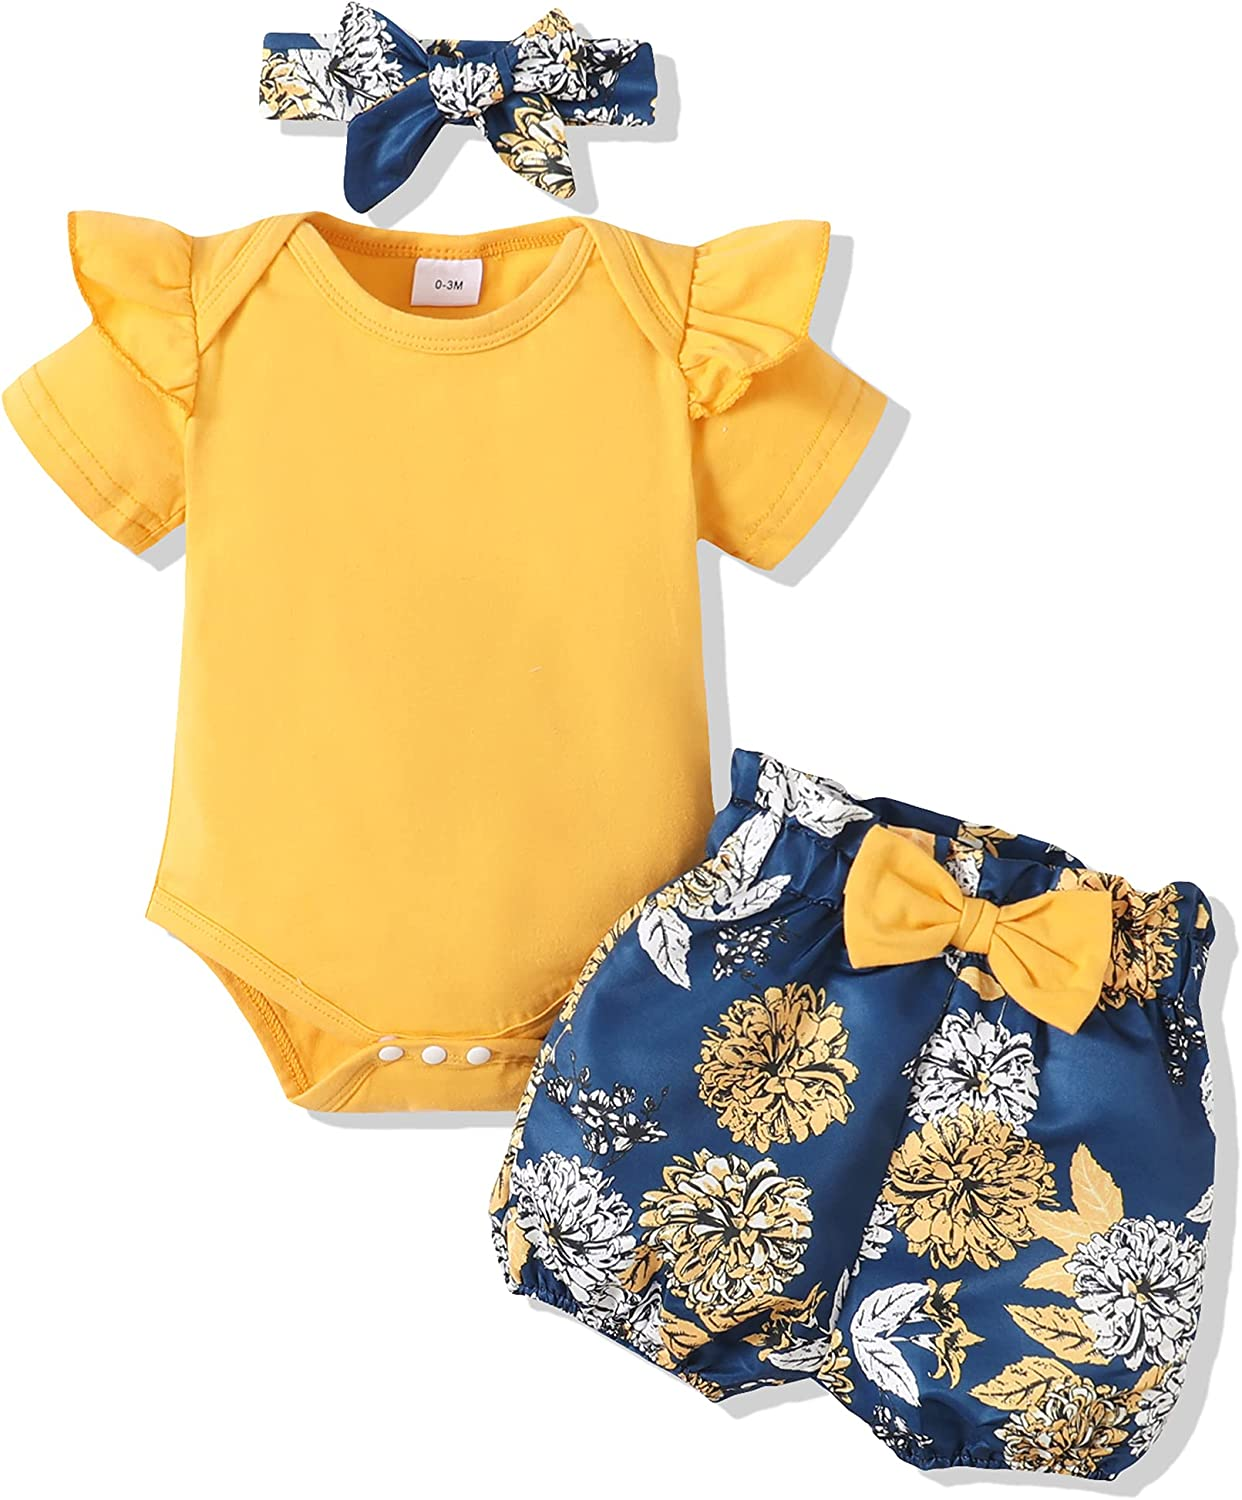 Newborn Infant Baby Girl Clothes Romper Jumpsuit Tops Floral Shorts Cute 3PCS Girl Clothes Summer Outfit Sets 0-18M